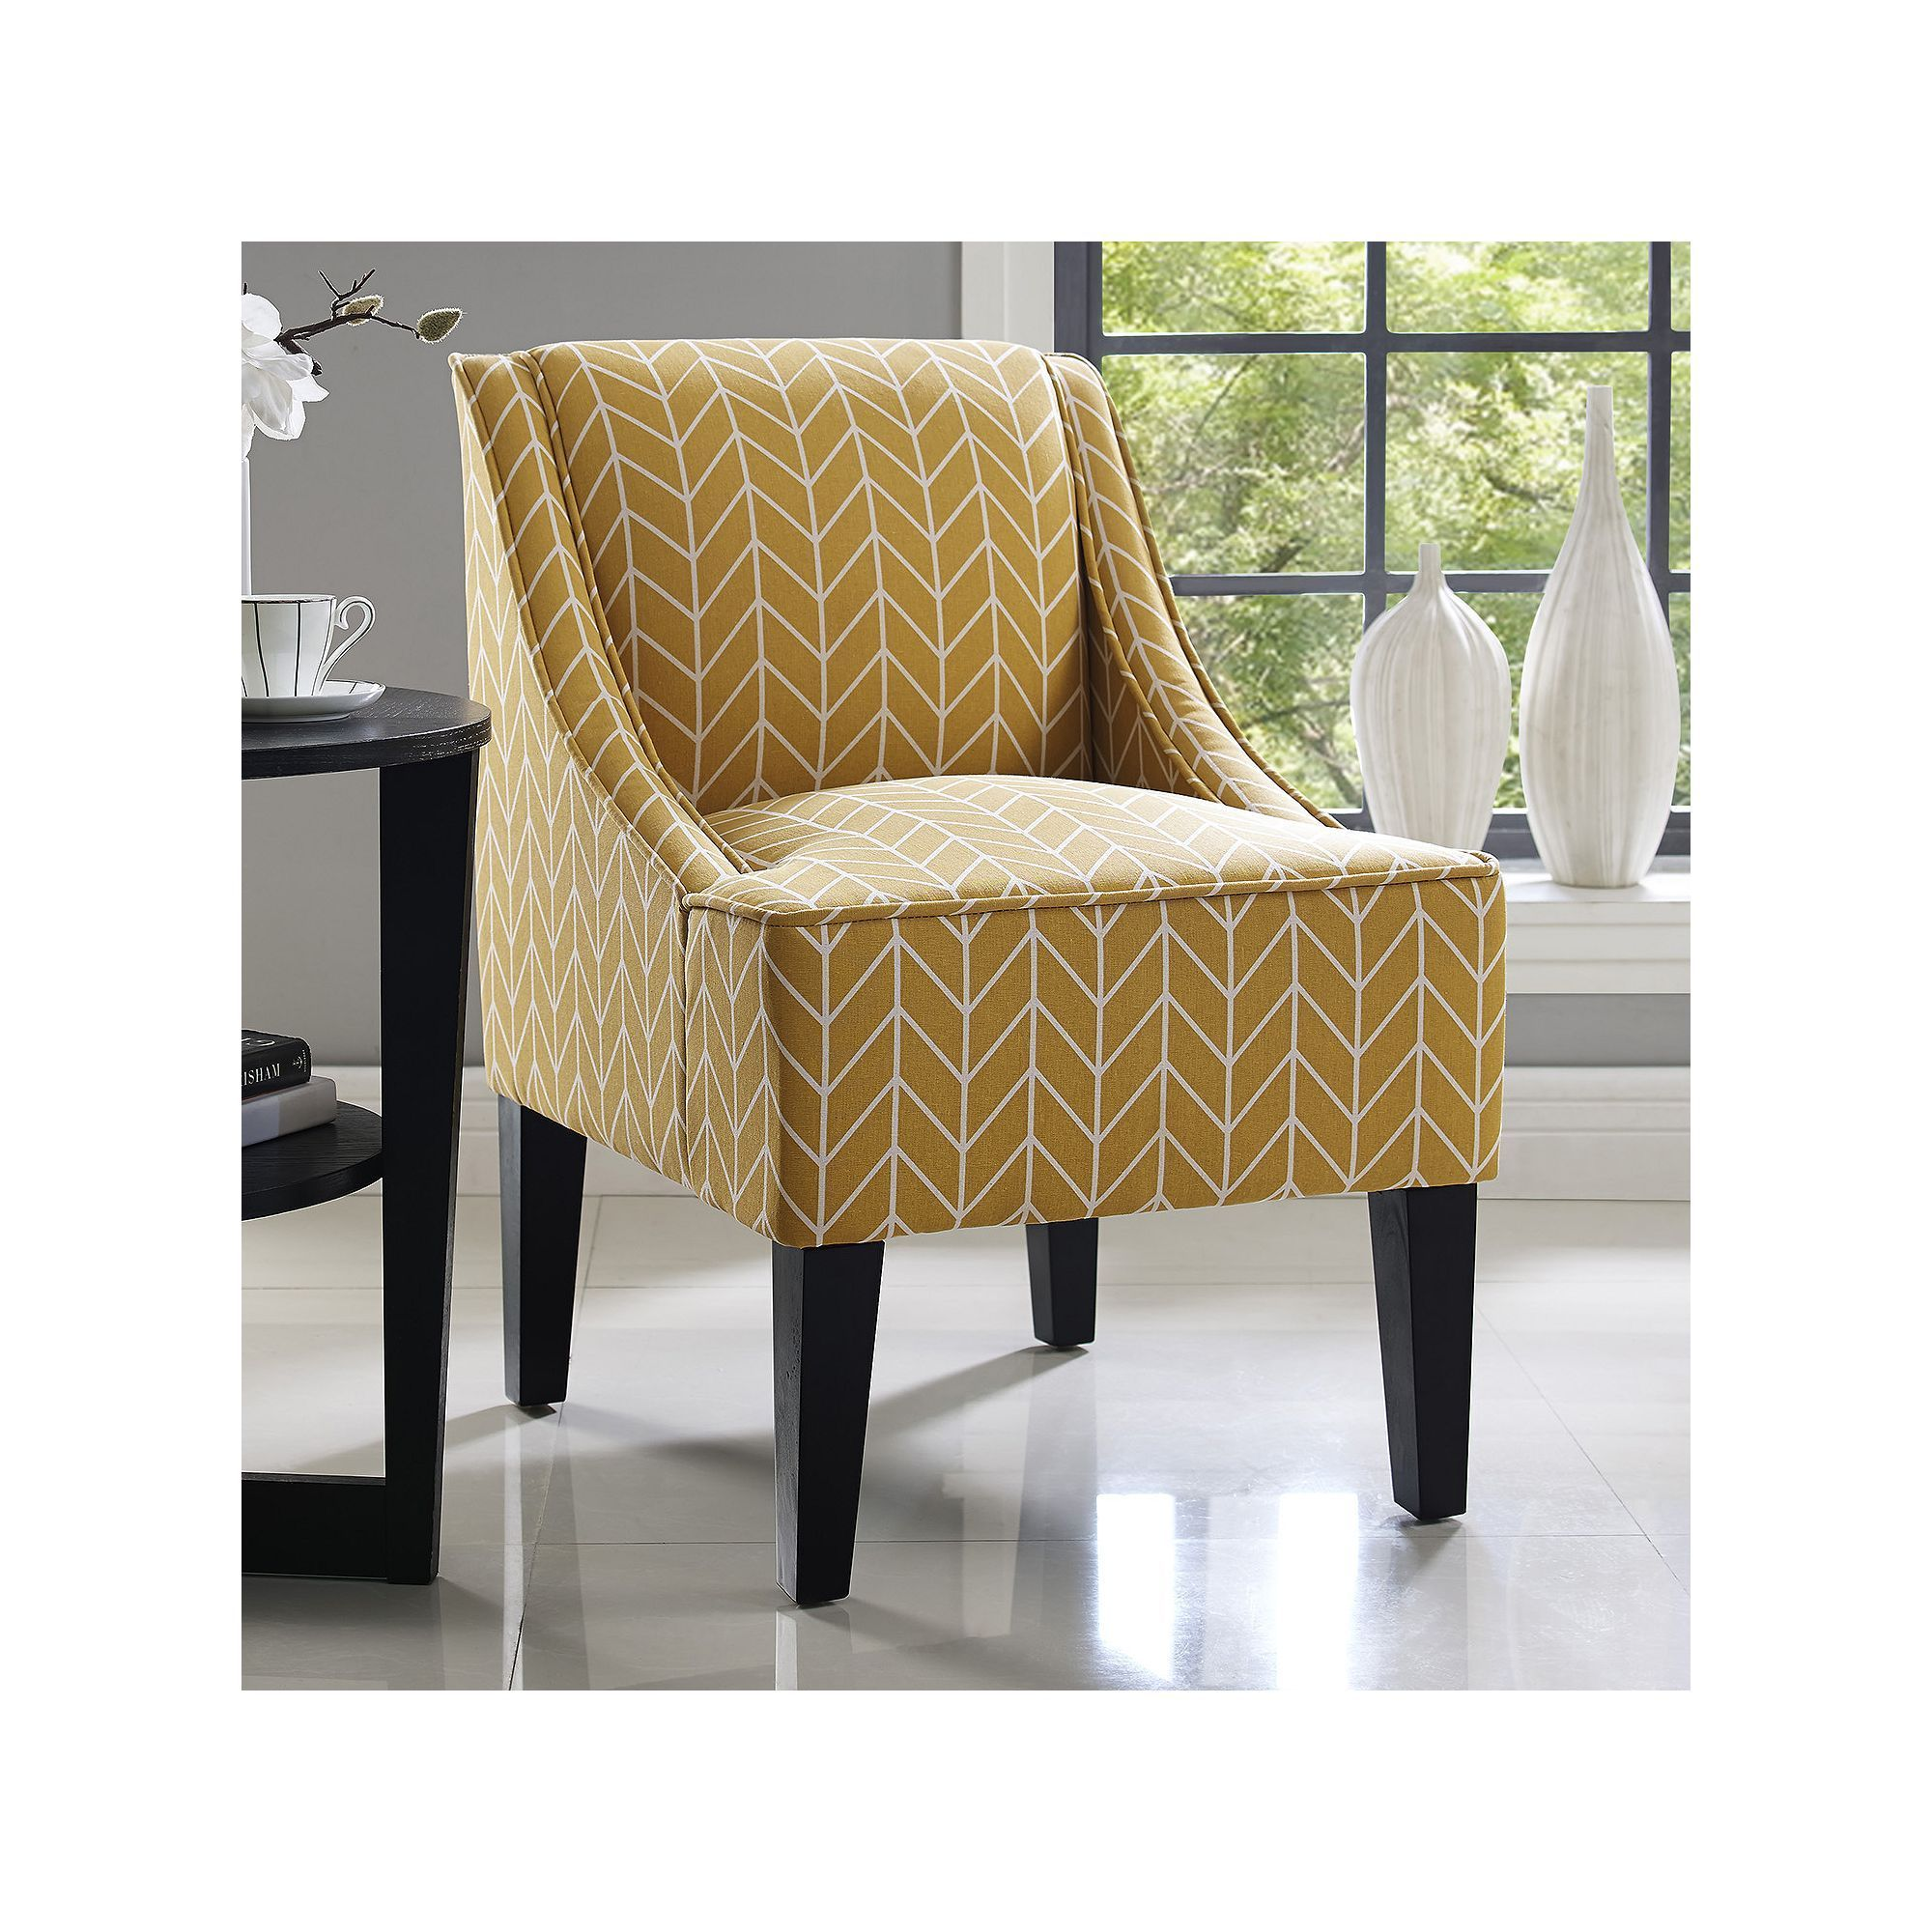 overstock antiqued chair free shipping yellow traditional accent antoinette garden home today product french classic